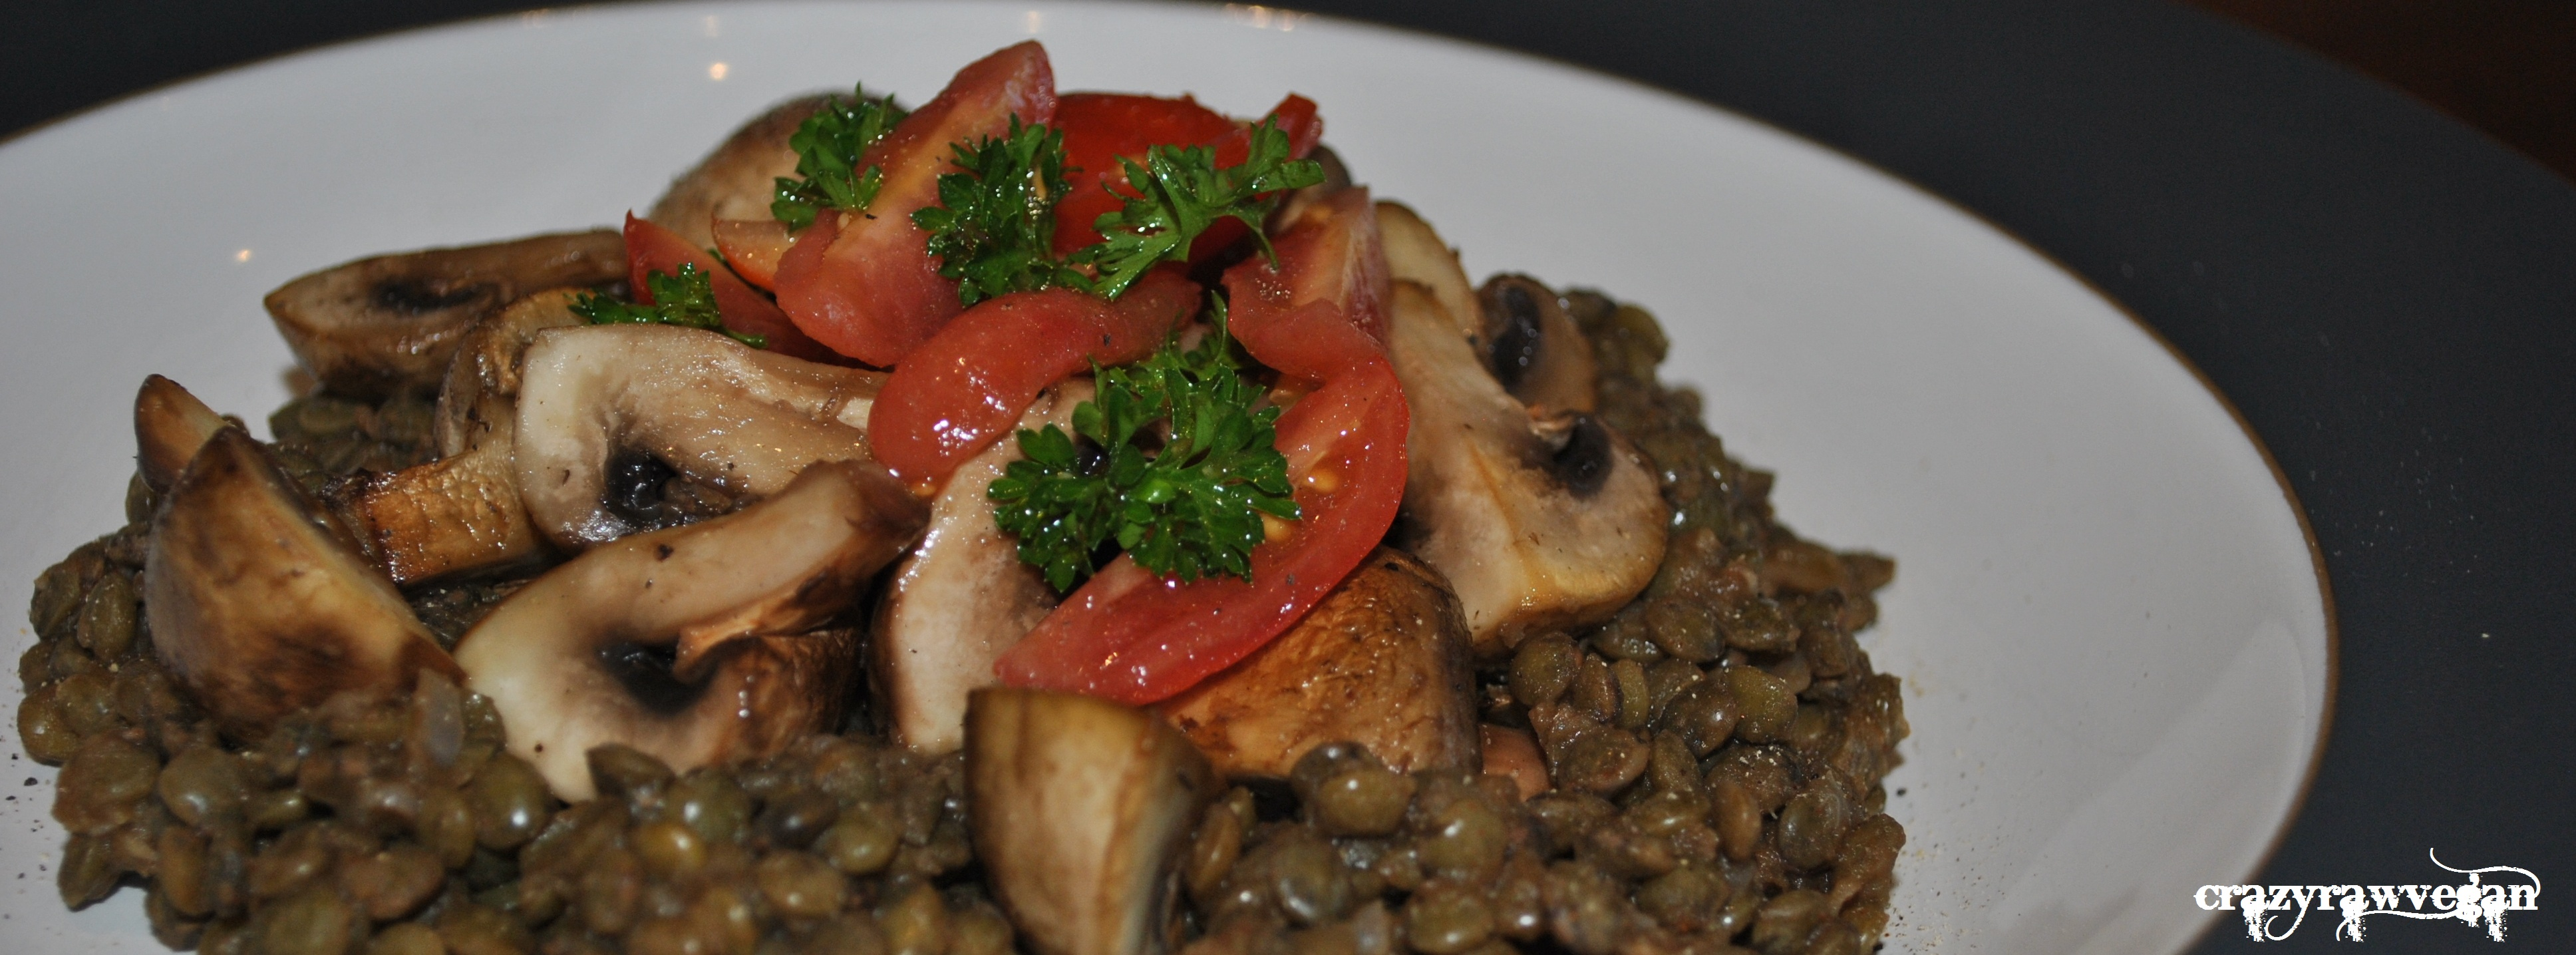 spanish lentils and mushroom stew | crazy raw vegan